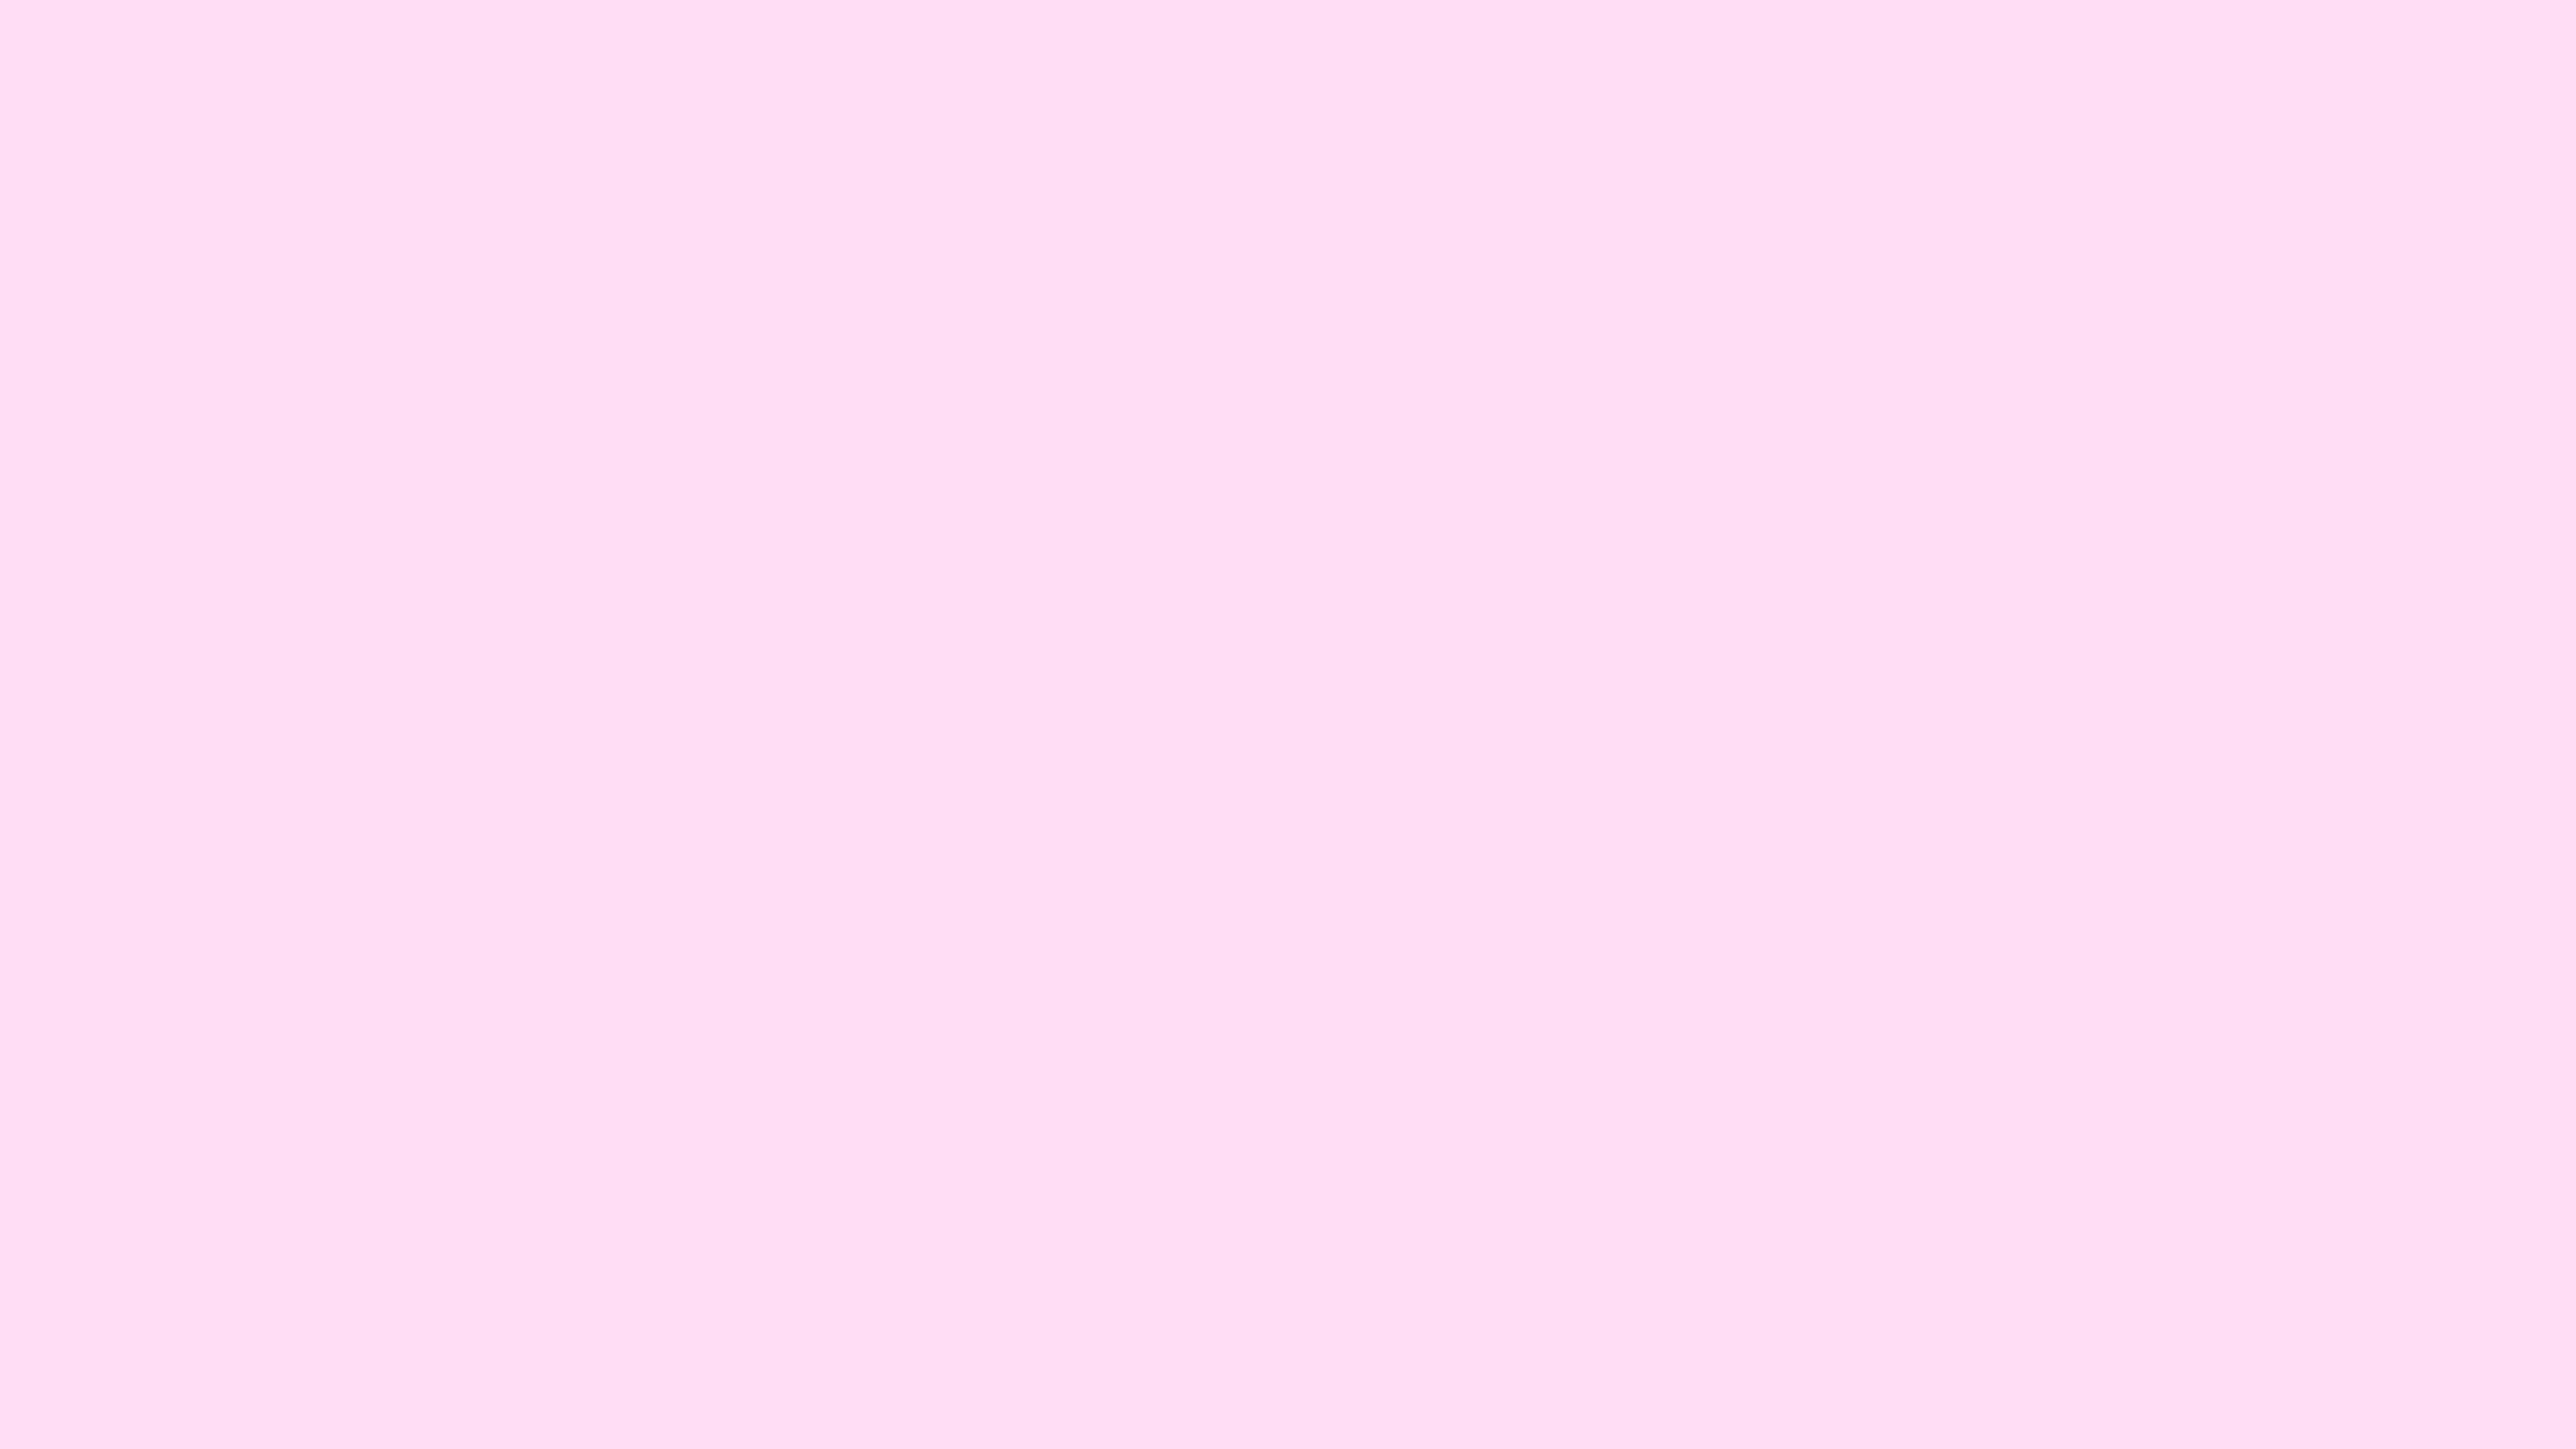 7680x4320 Pink Lace Solid Color Background